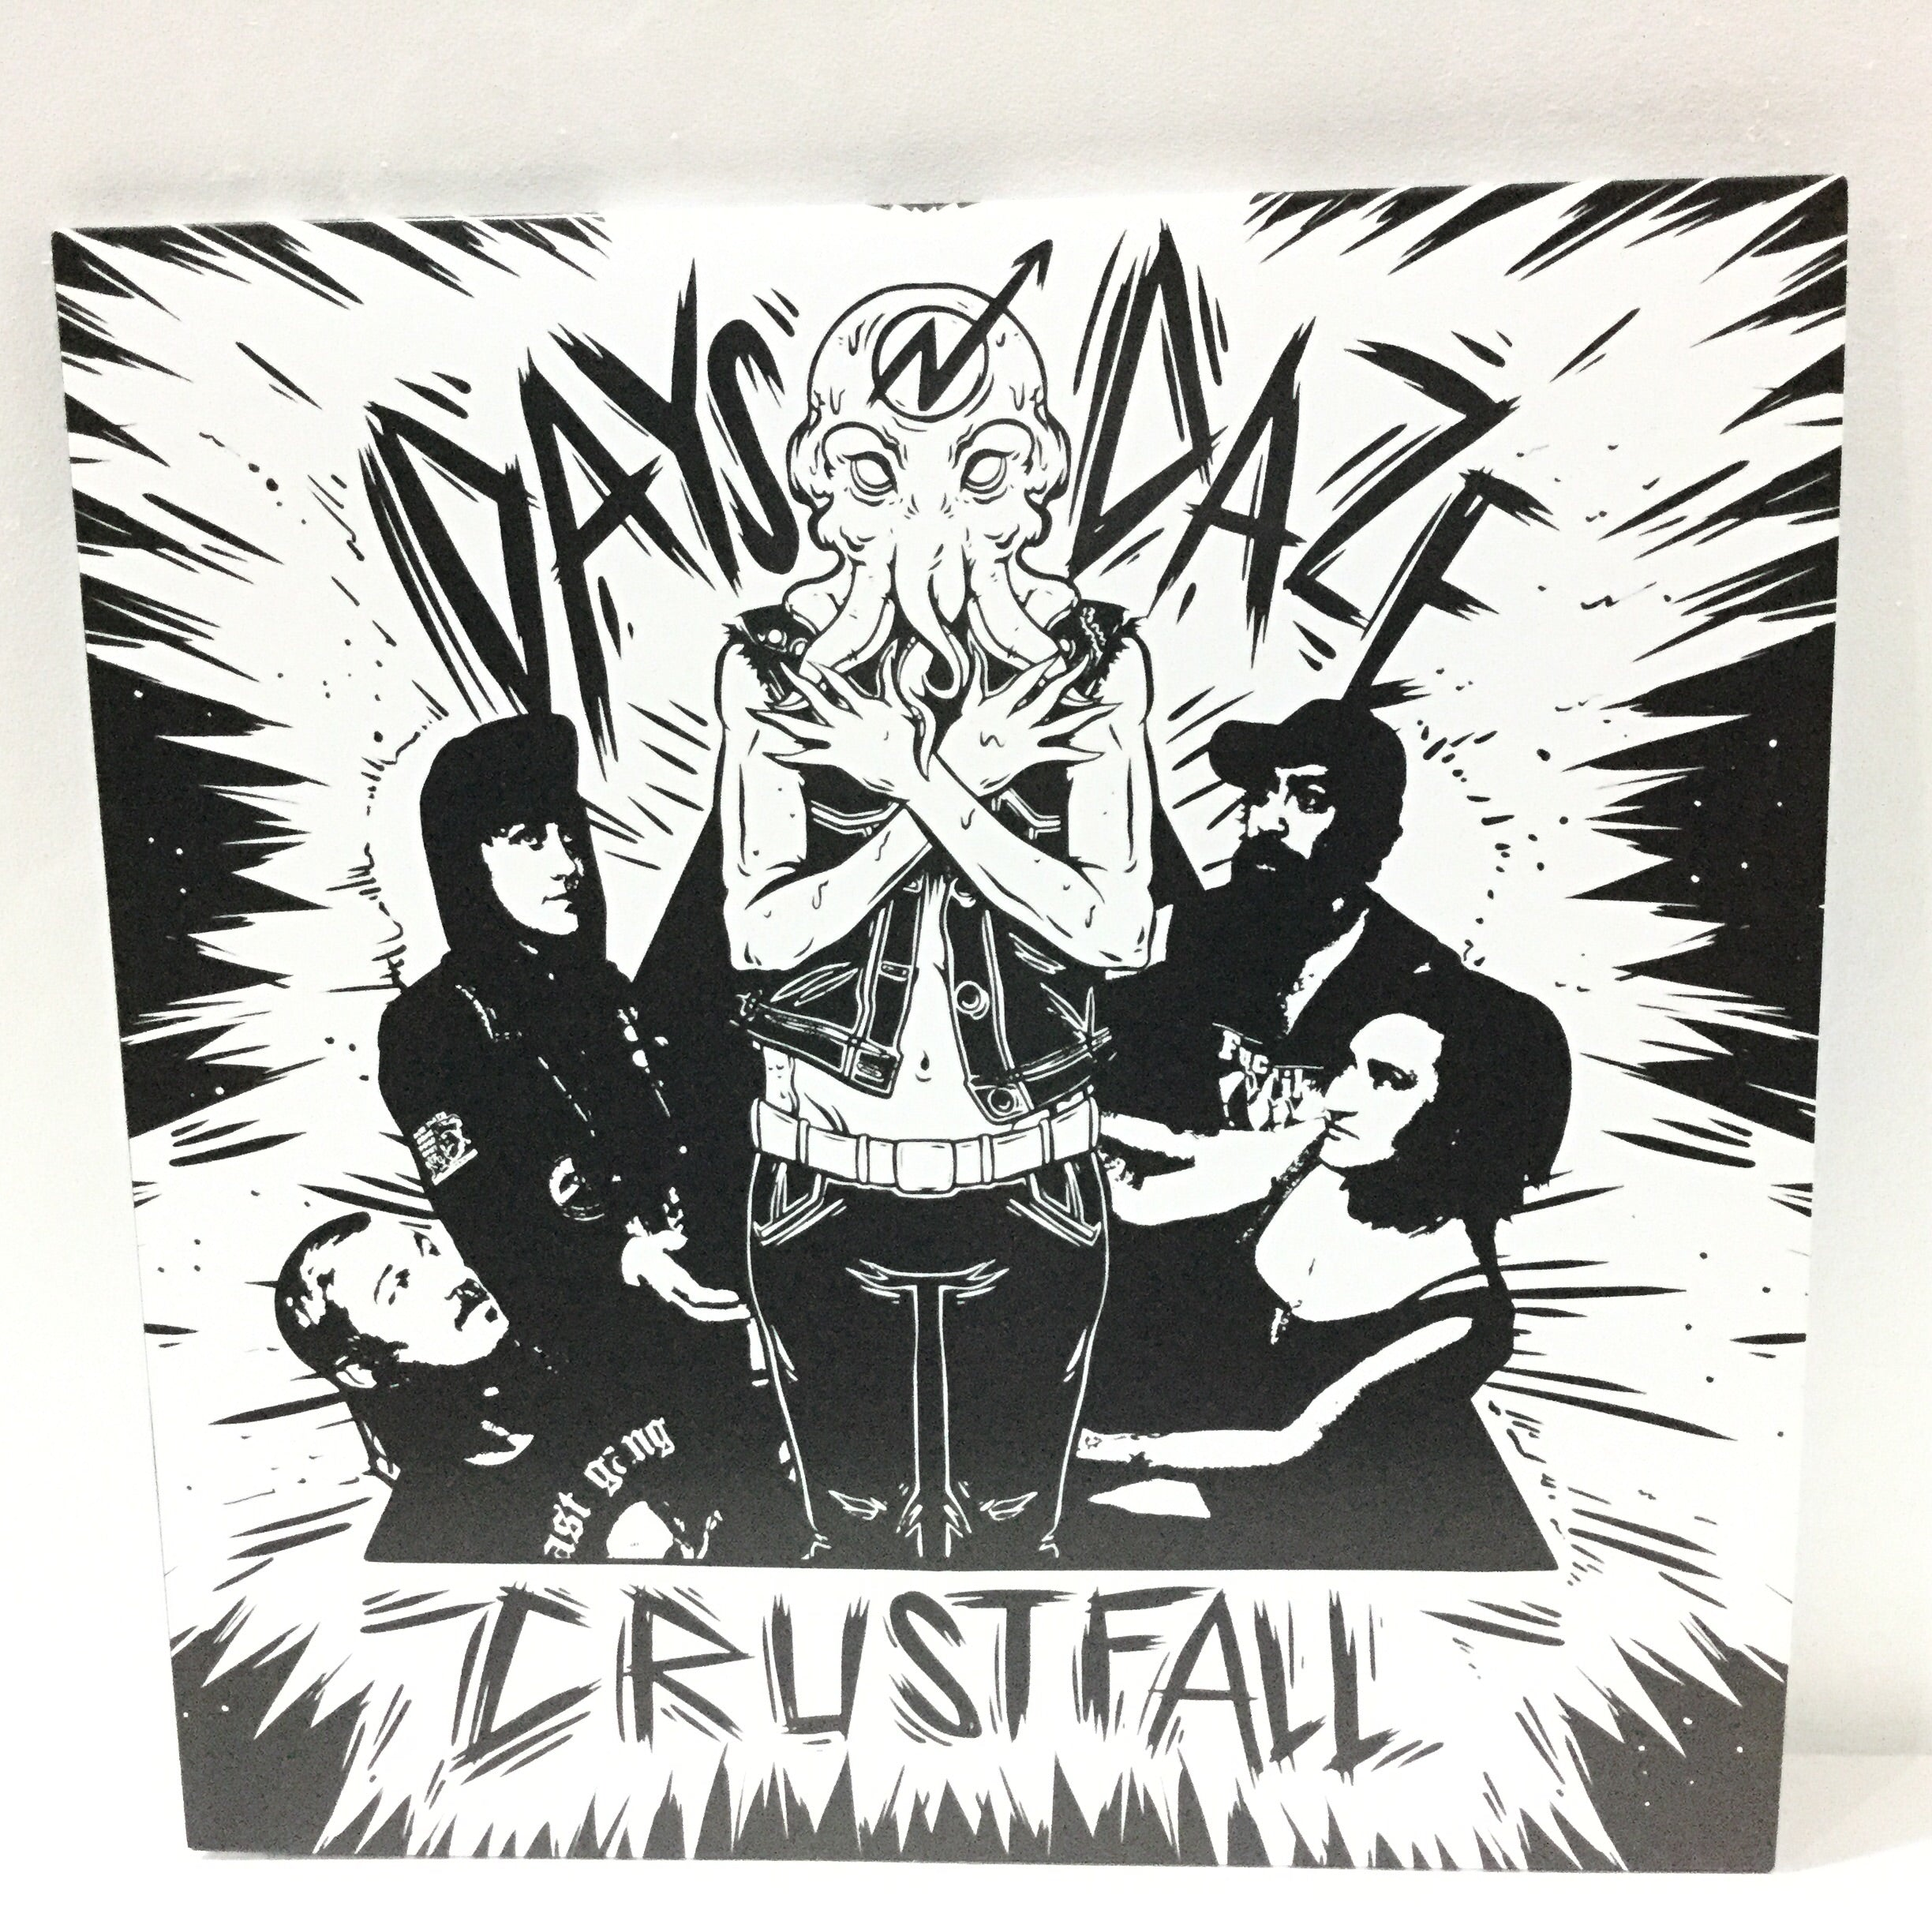 Days N Daze - Crustfall - Sustain - Gallery and Workspace | Art, Prints, Zines, Workshops | Chicago, IL